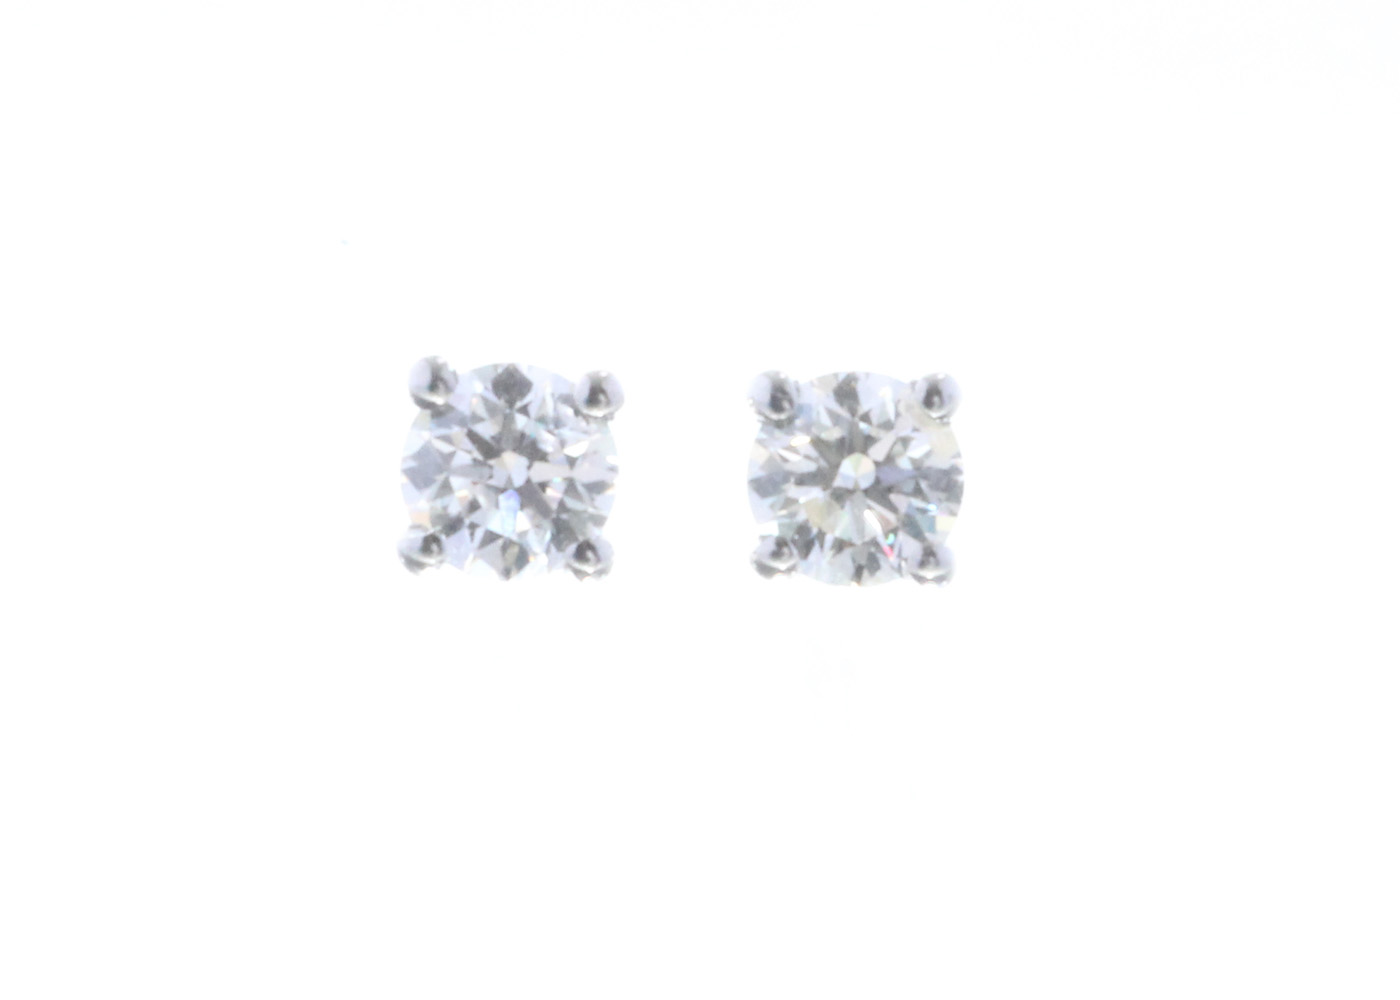 Lot 33 - 18ct White Gold Claw Set Diamond Earrings 0.40 Carats